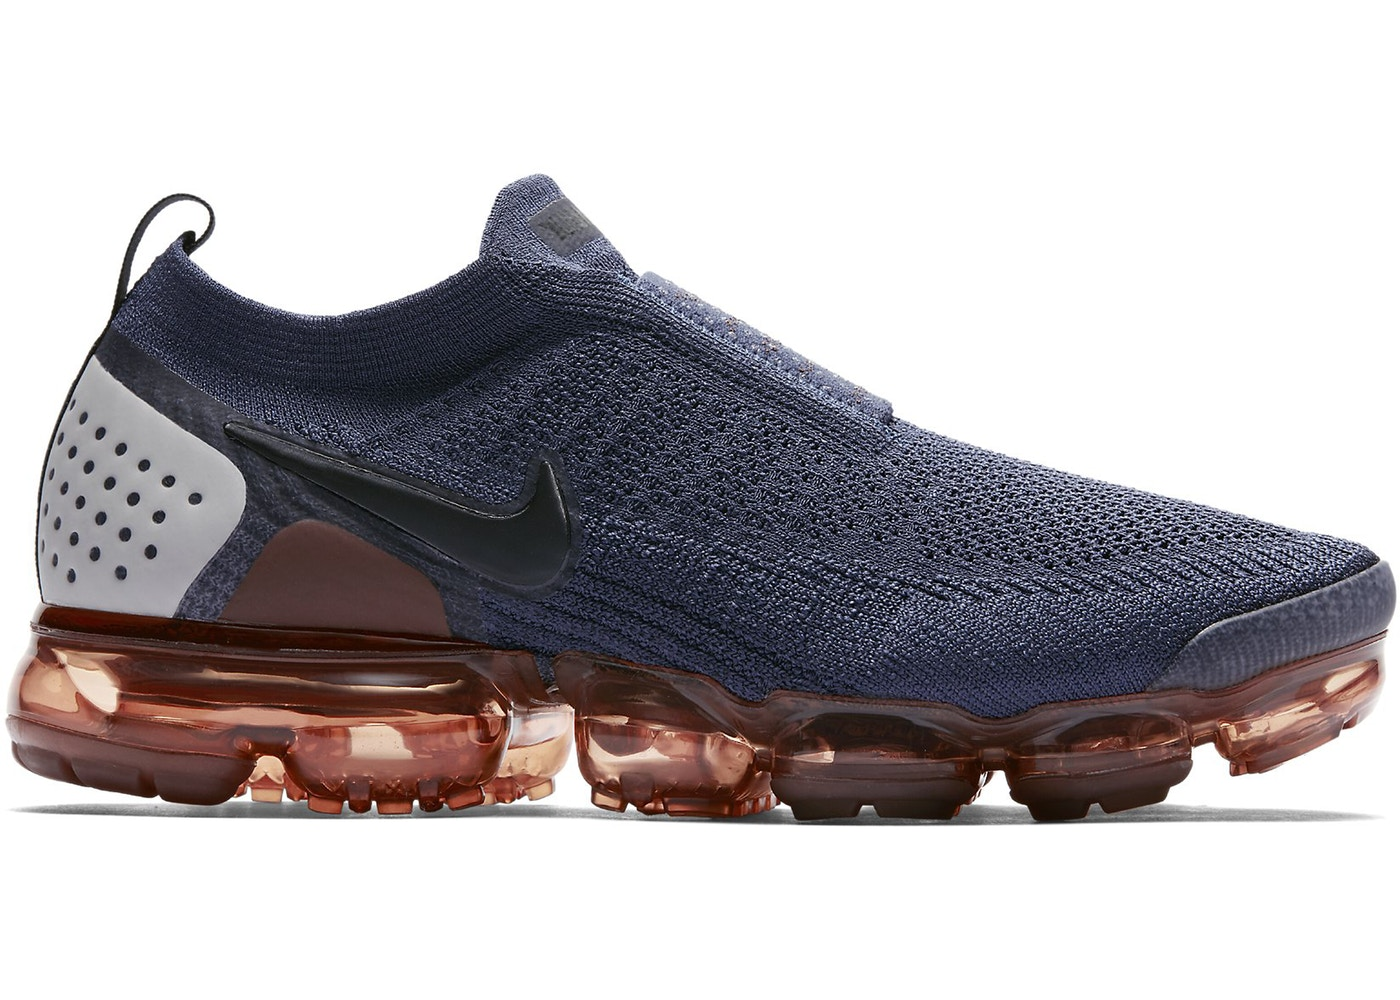 Nike Air Max VaporMax Shoes - New Highest Bids